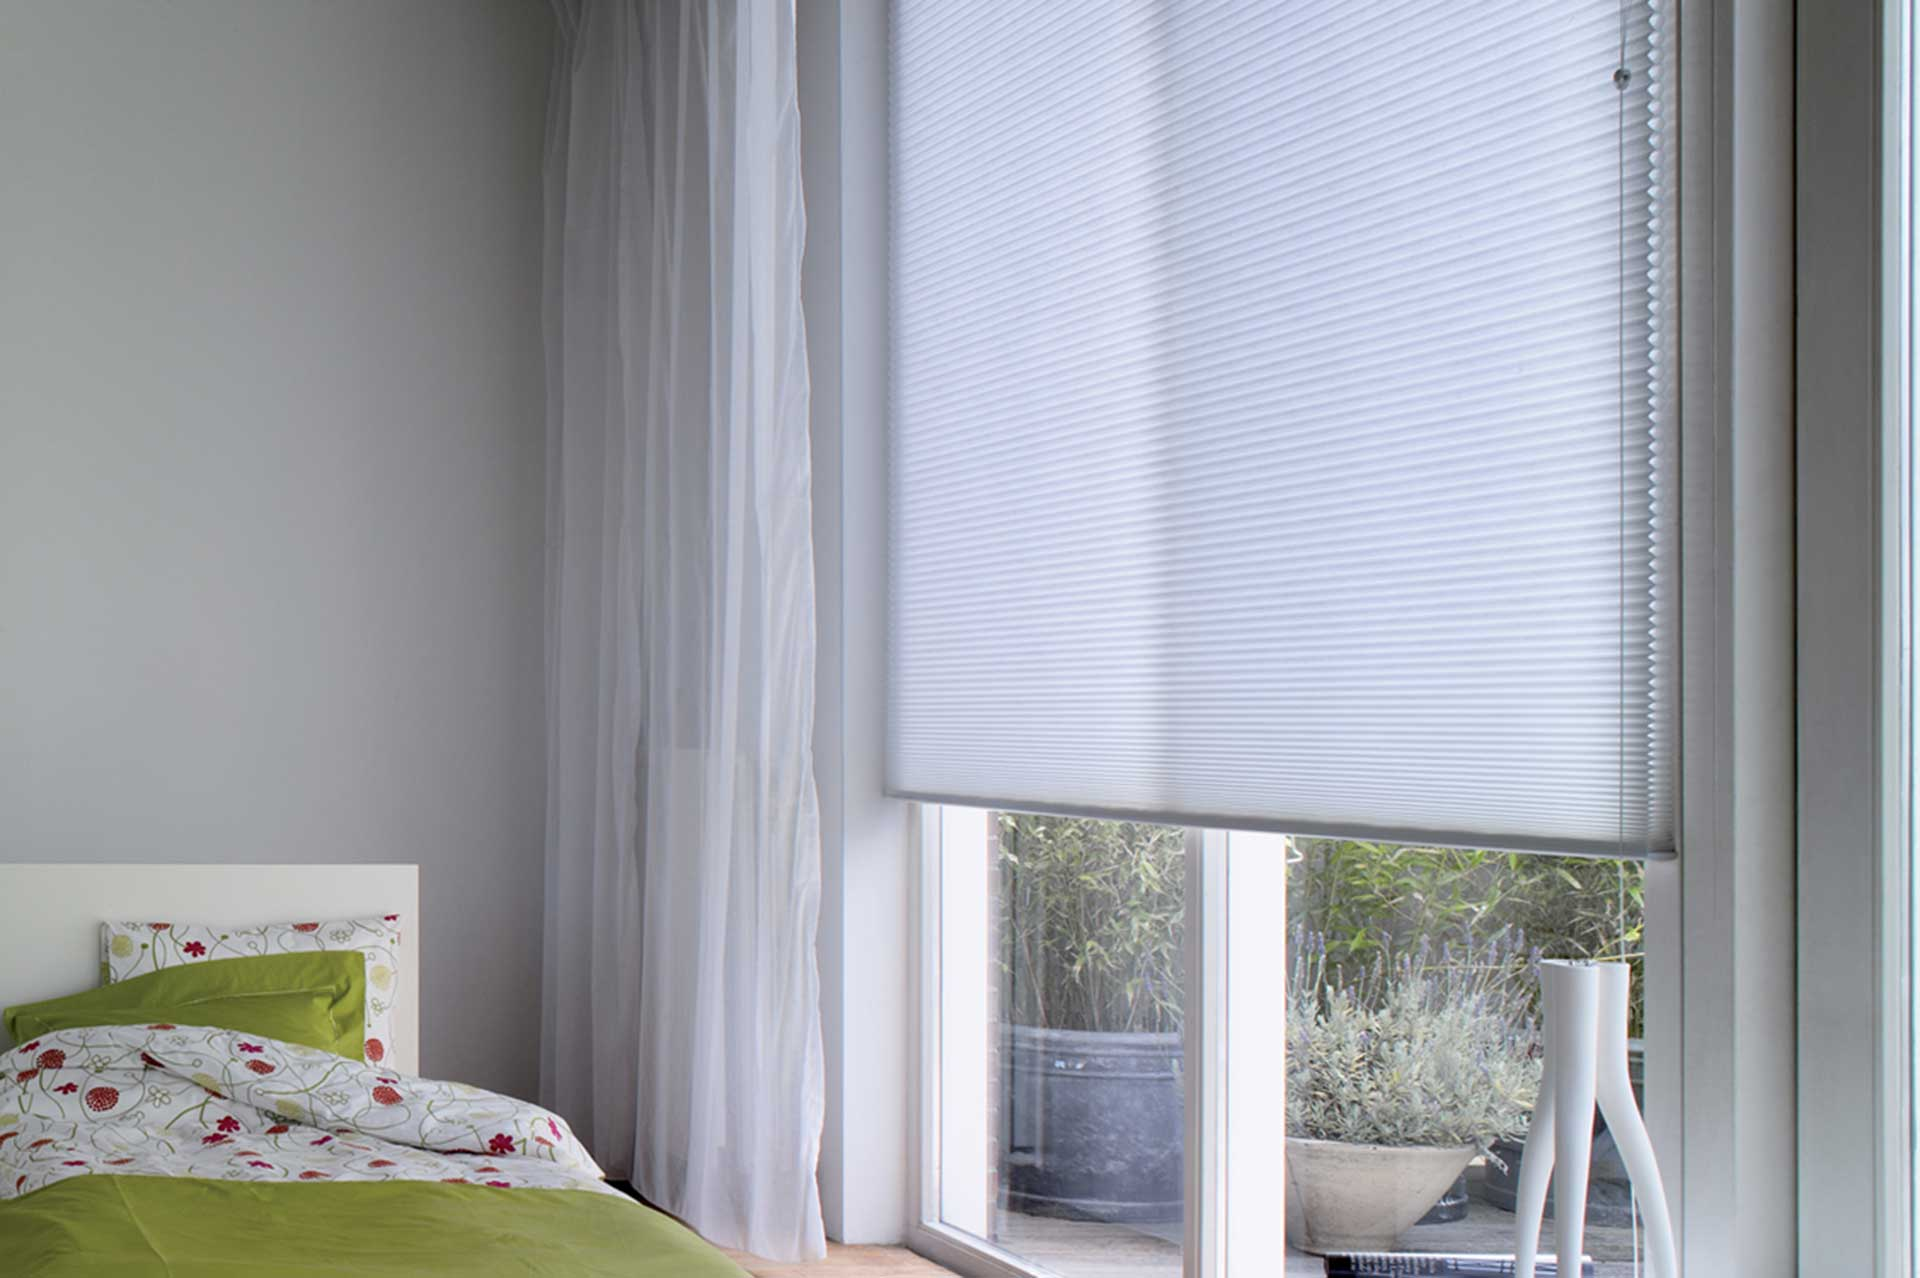 Duette Blinds image